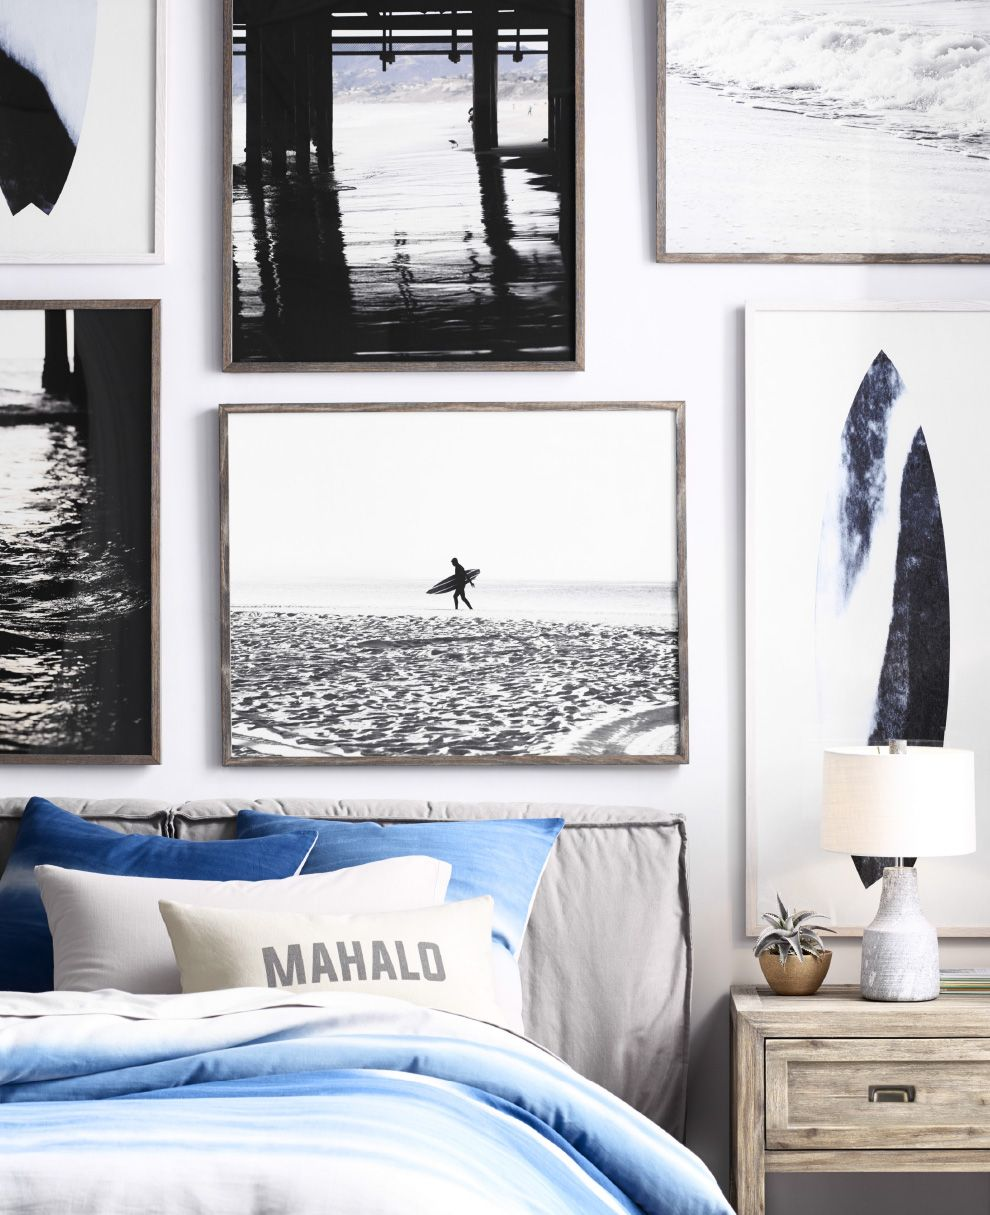 Bring The Outside In With Surf Inspired Artwork Hung In A Dynamic